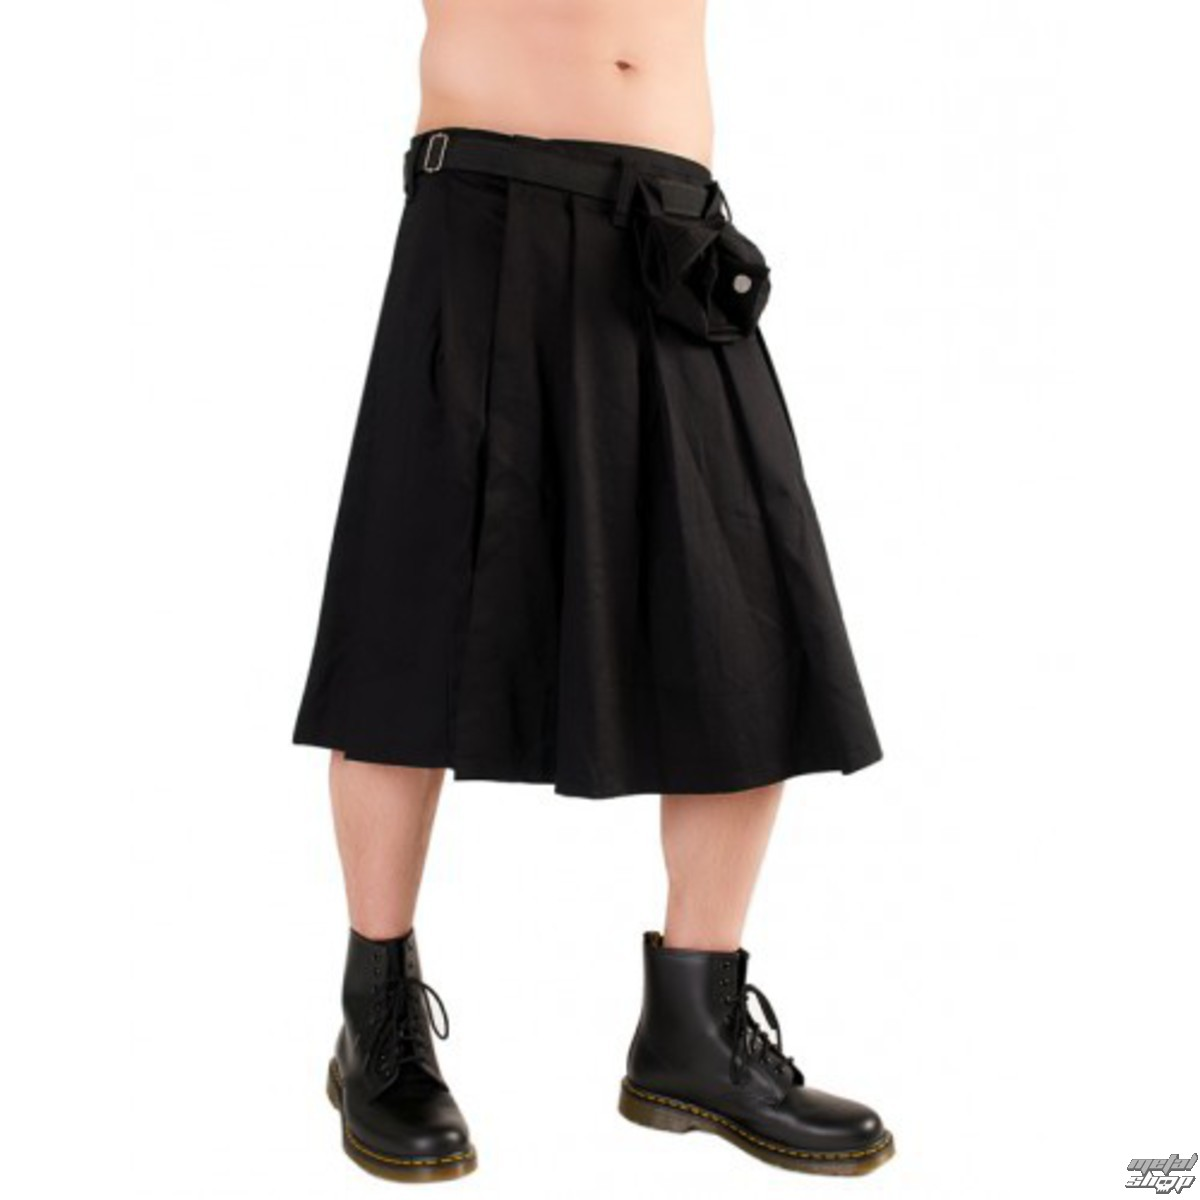 kilt BLACK PISTOL Short Kilt Denim Black S